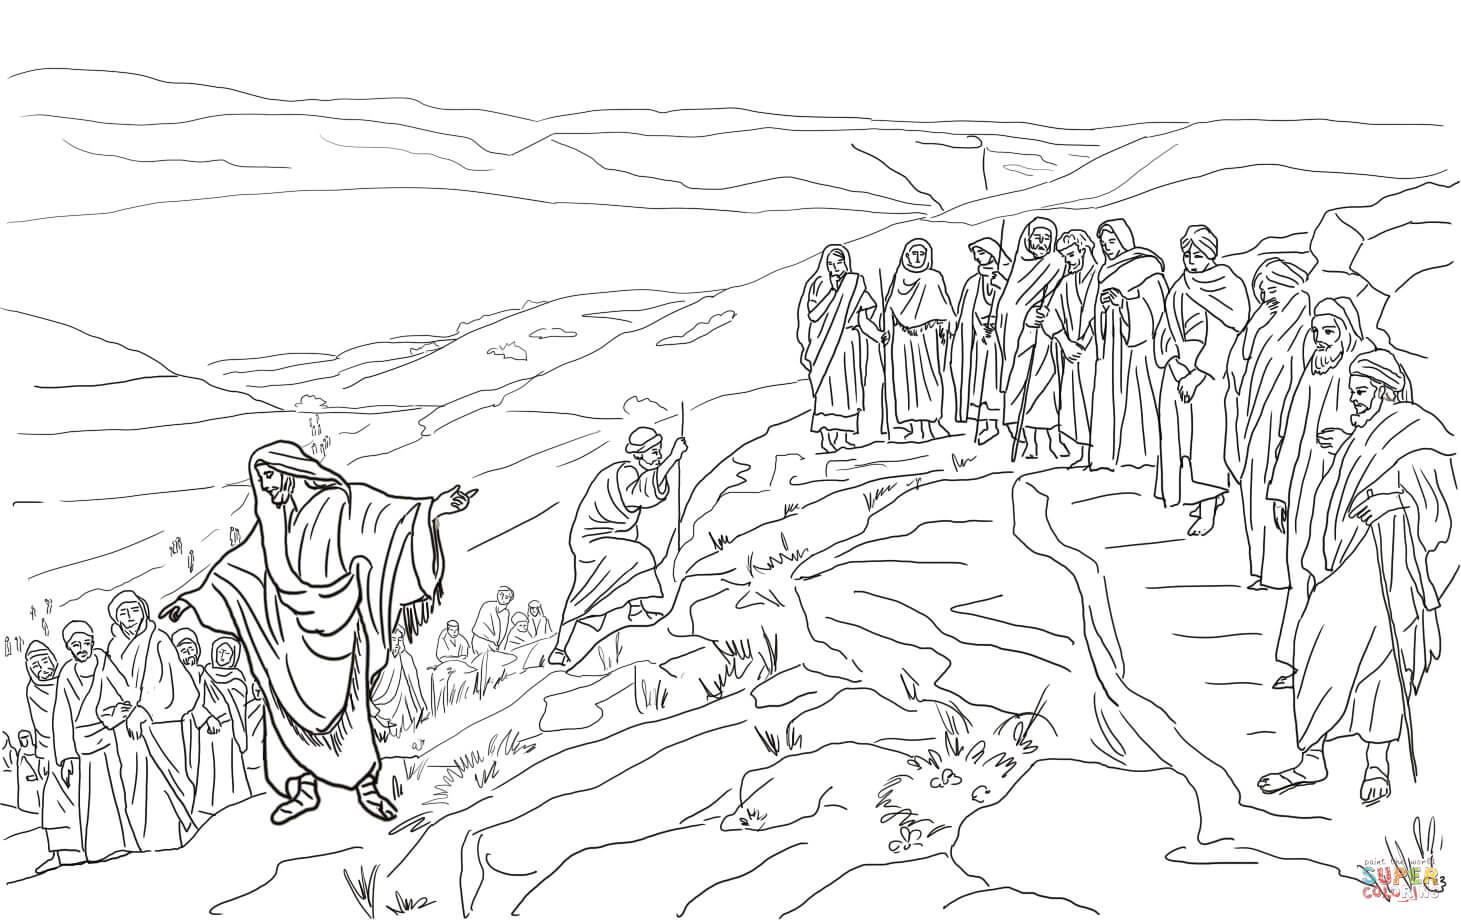 Twelve Disciples Coloring Page - Auto Electrical Wiring Diagram on horn diagram, key diagram, tube diagram, filter diagram, ecm diagram, belt diagram, light diagram, genesis diagram, plasma diagram, wheels diagram, honda cb 350 wire diagram, control diagram, engine diagram, spiral diagram, plug diagram, pin diagram, pipeline diagram, wiring diagram, switch diagram, power diagram,